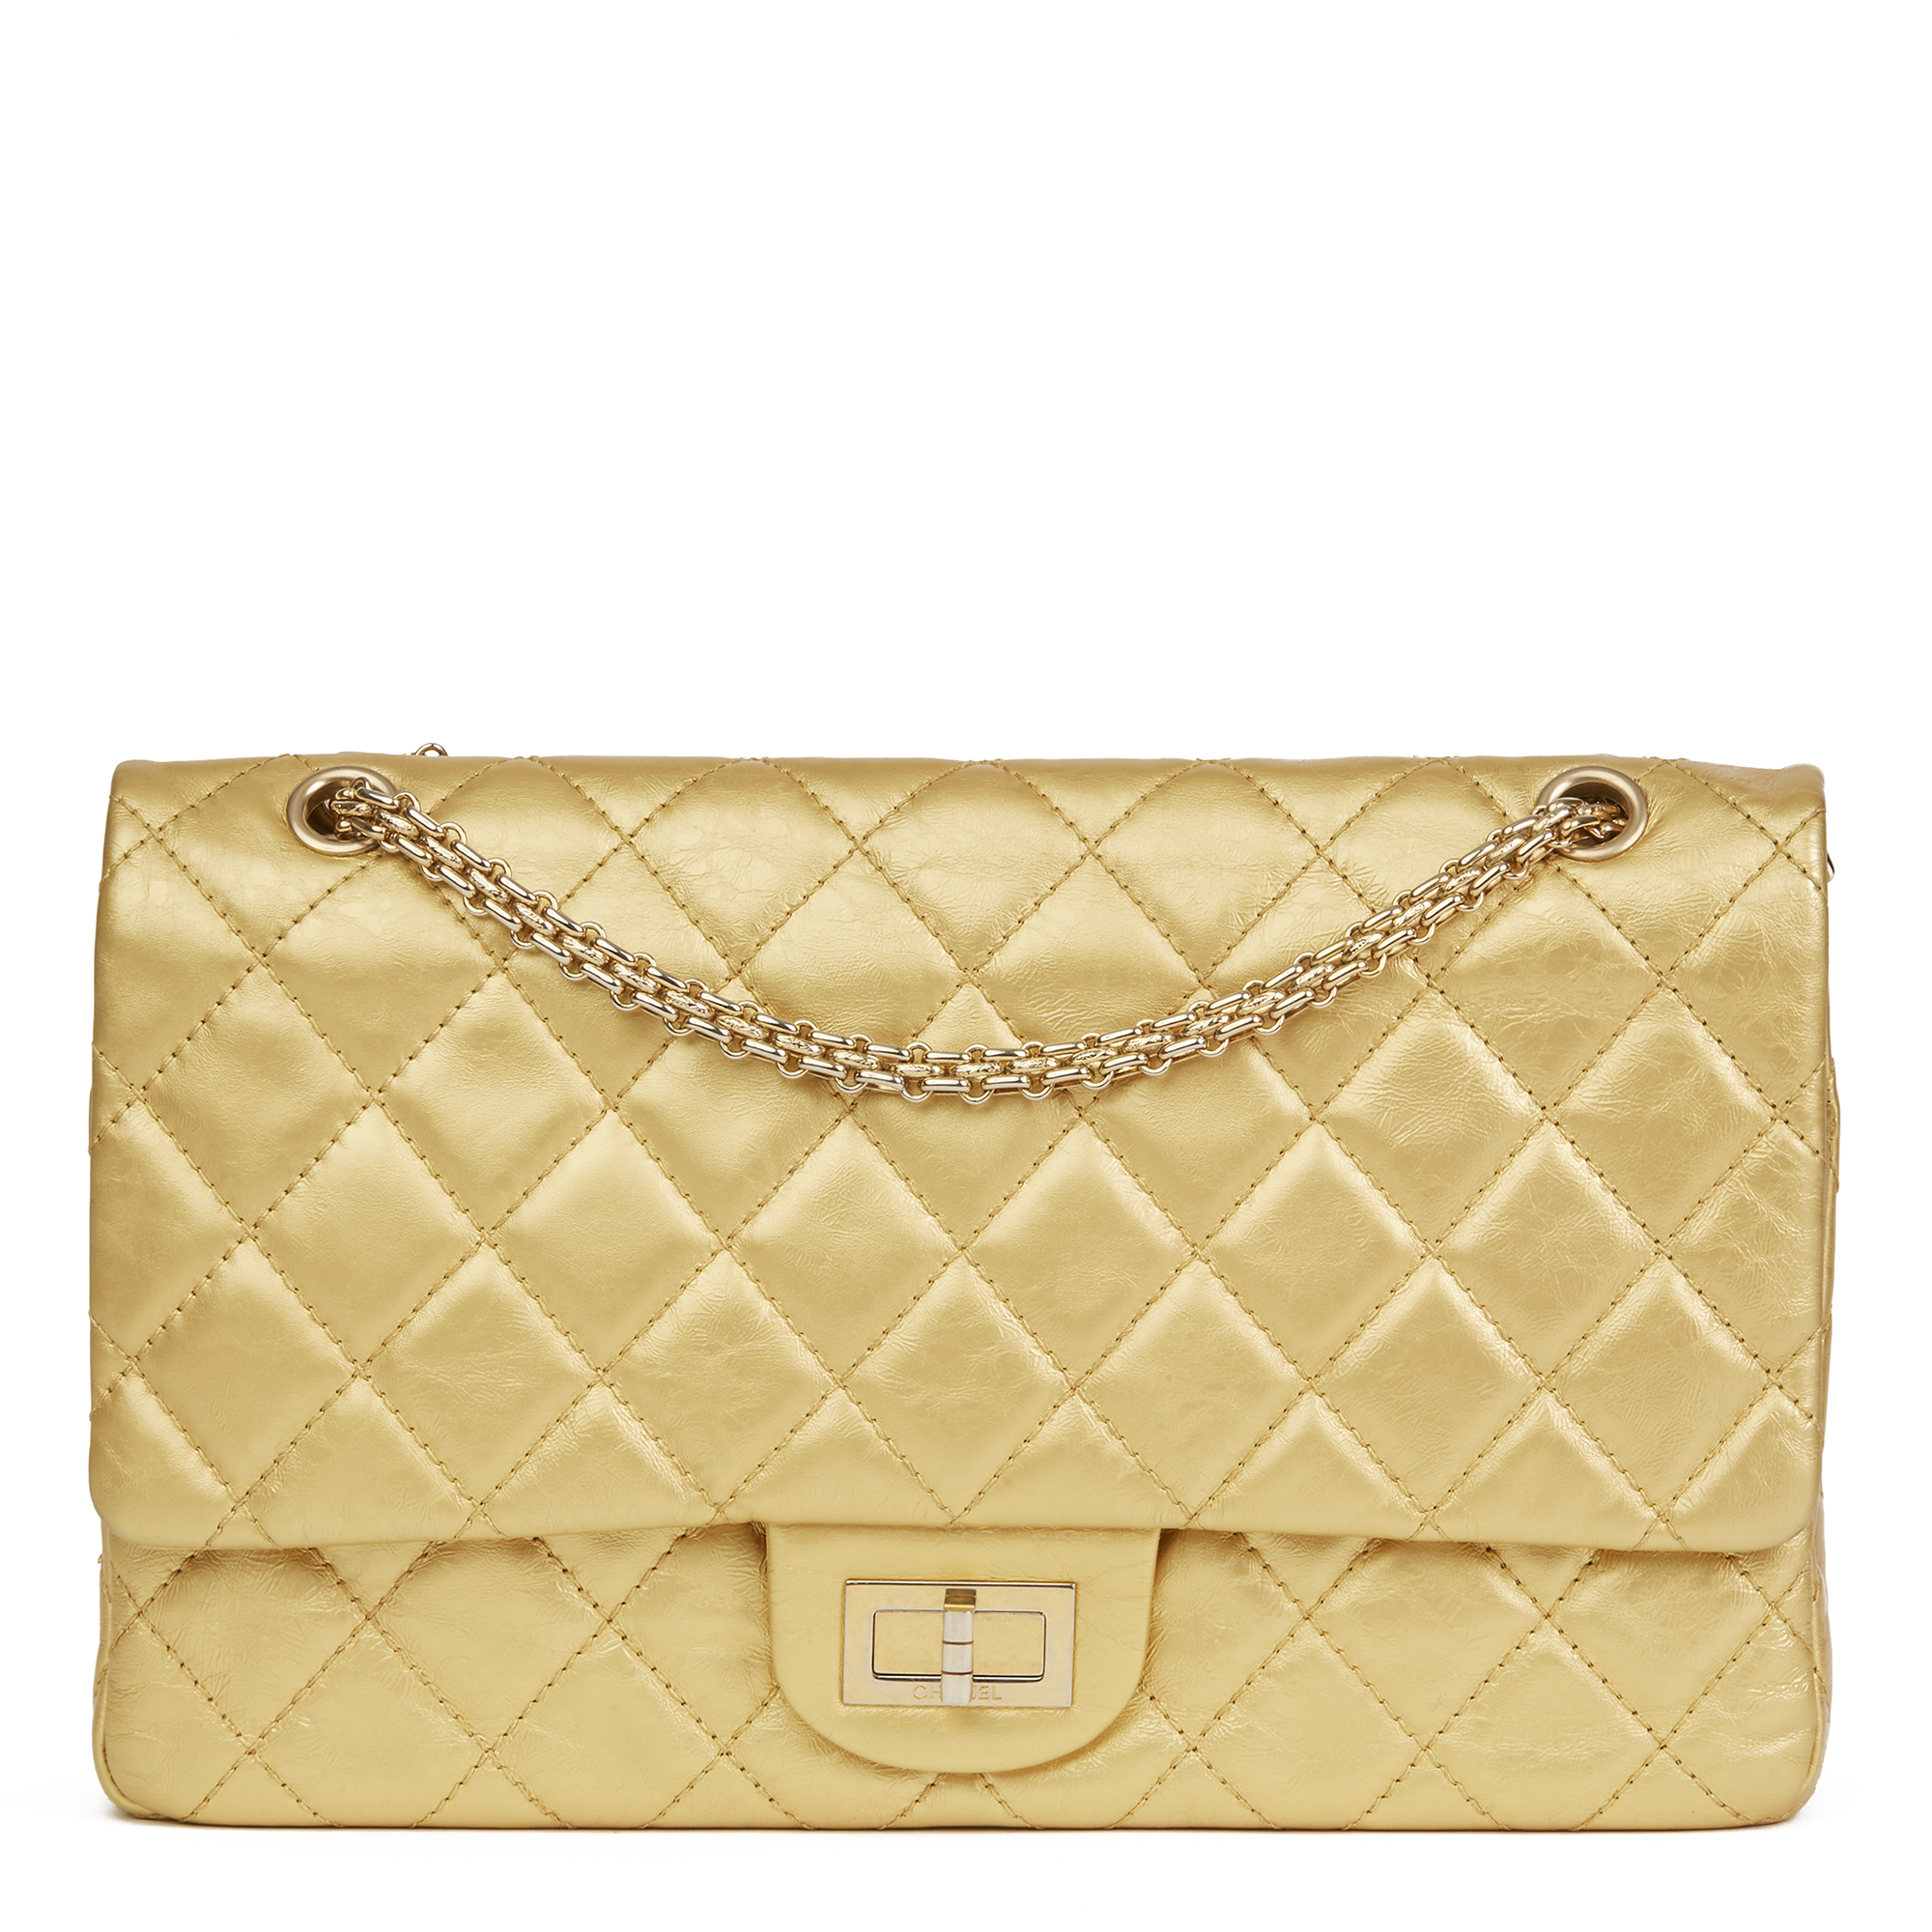 0500c033dd40 Chanel Gold Quilted Aged Metallic Calfskin Leather 2.55 Reissue 227 Double  Flap Bag